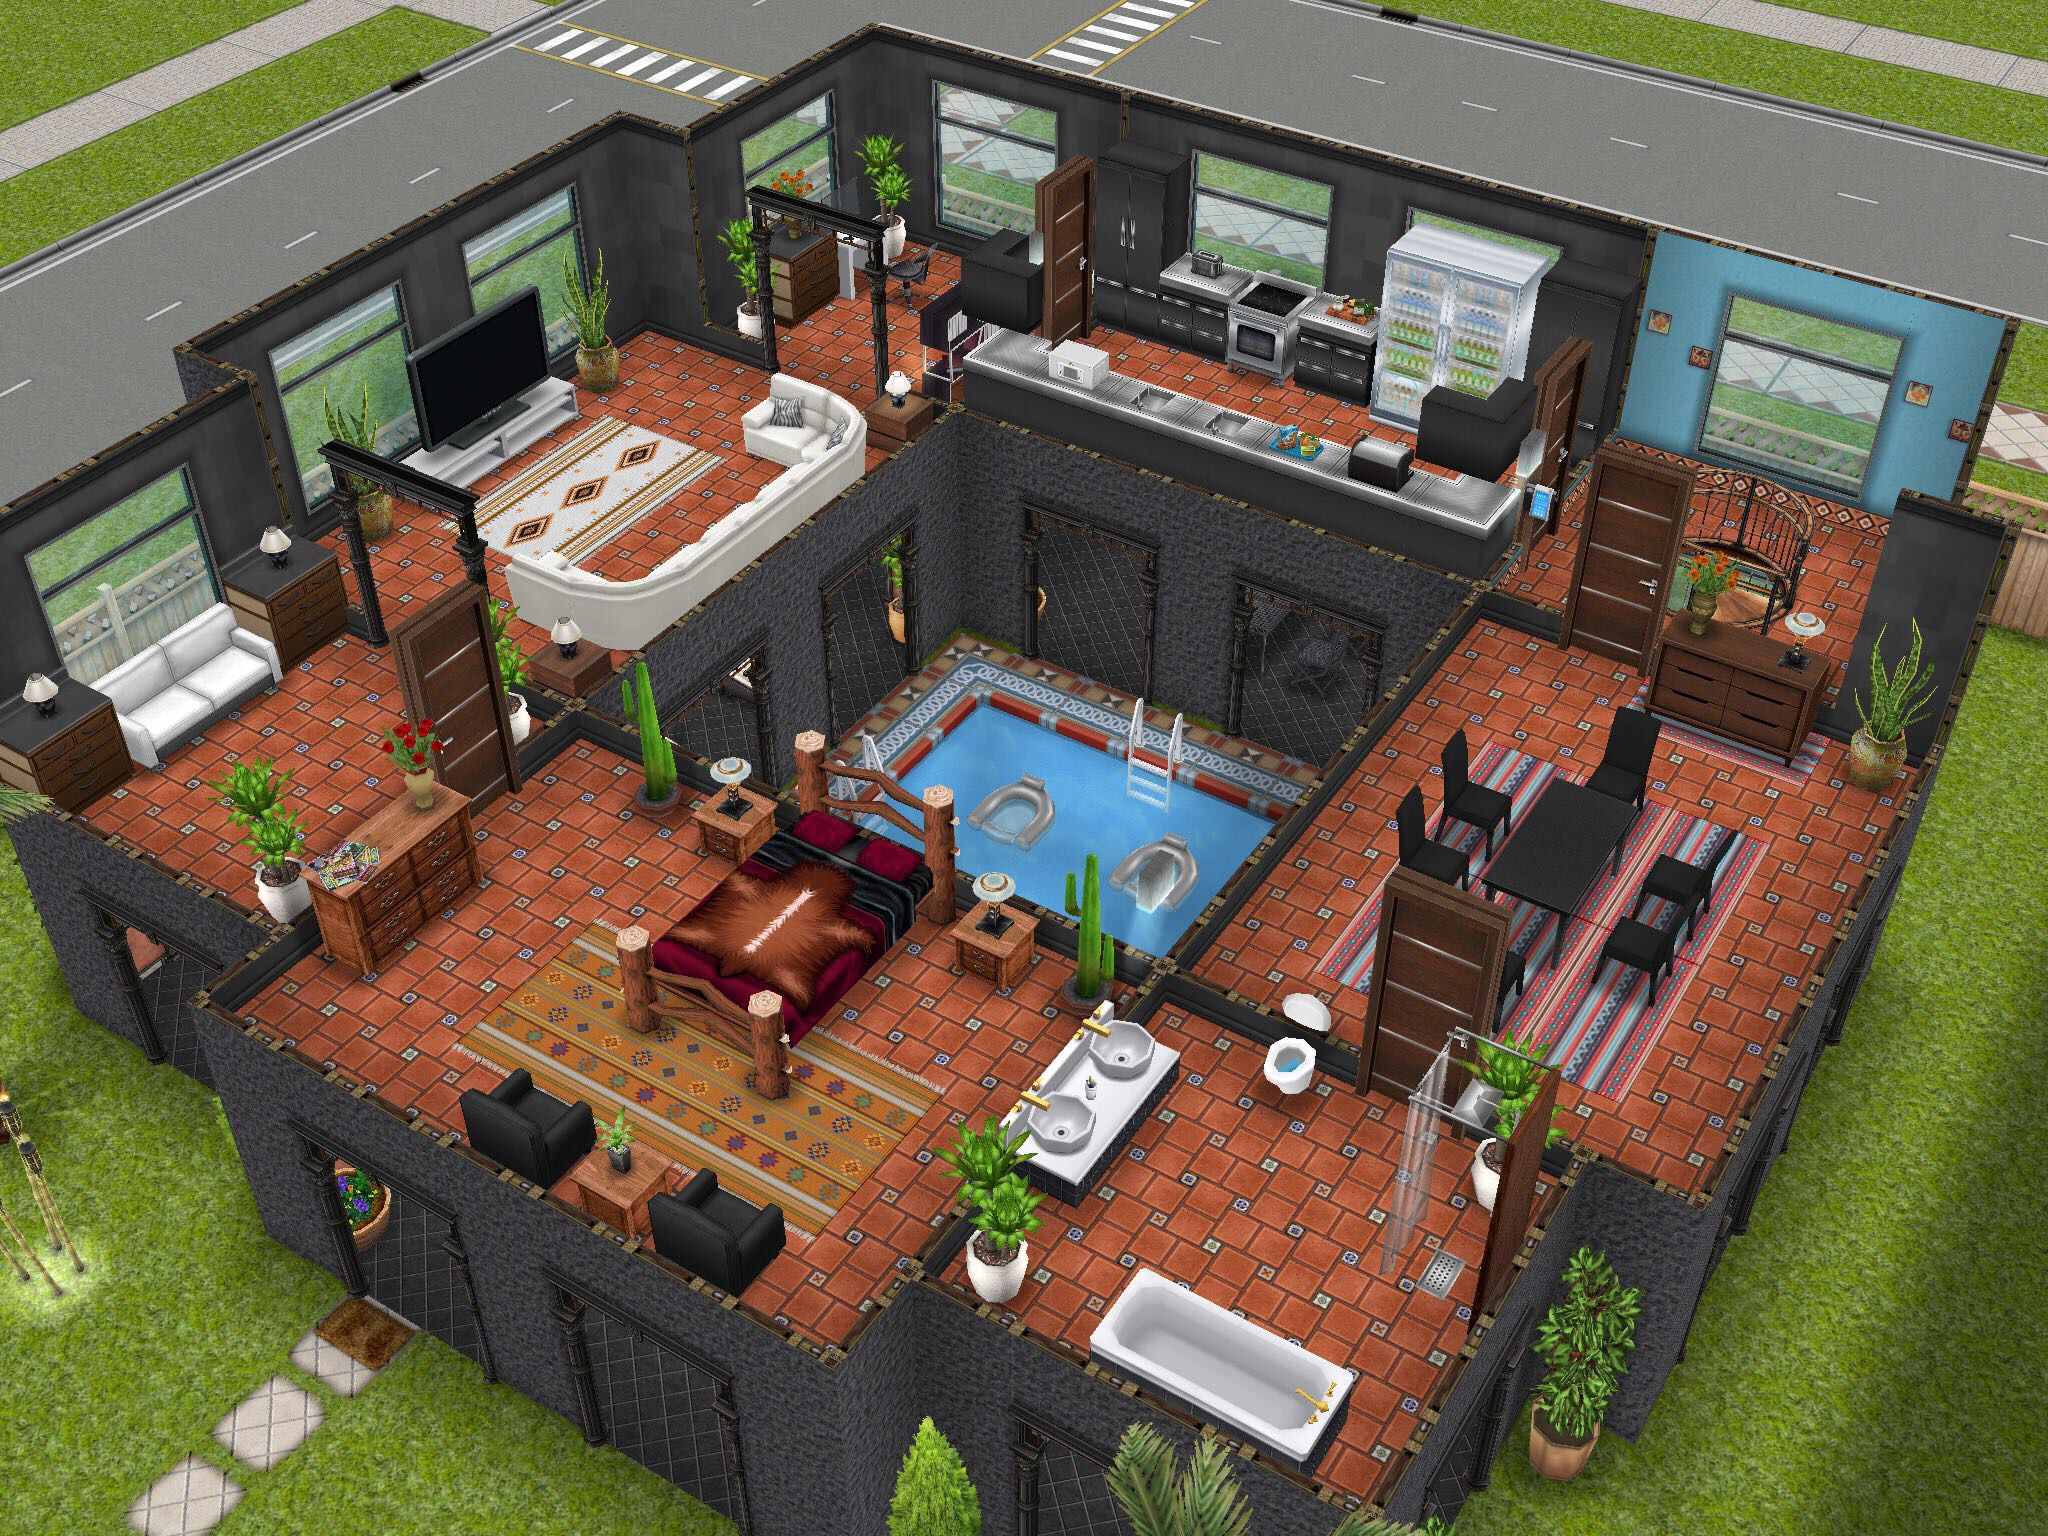 Variation on stilts house design I saw on Pinterest   thesims  freeplay   simsfreeplay. 17 Best images about sims freeplay house ideas on Pinterest   2nd